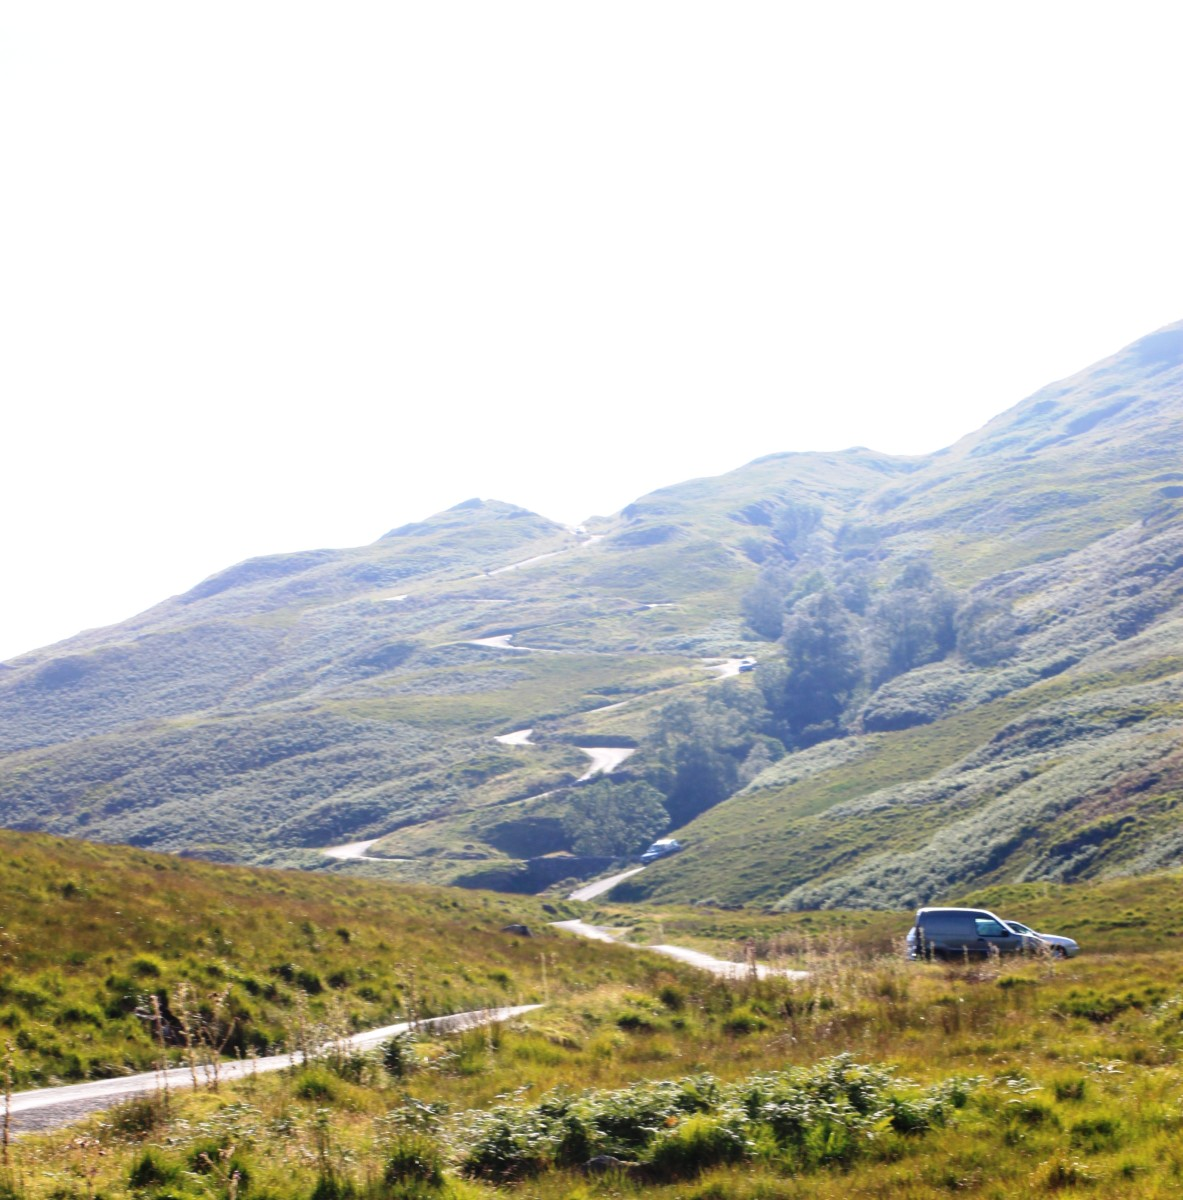 Hardknott Pass viewed from the Cockley Beck side. Arguably the hardest cycling climb in the Lake District and England